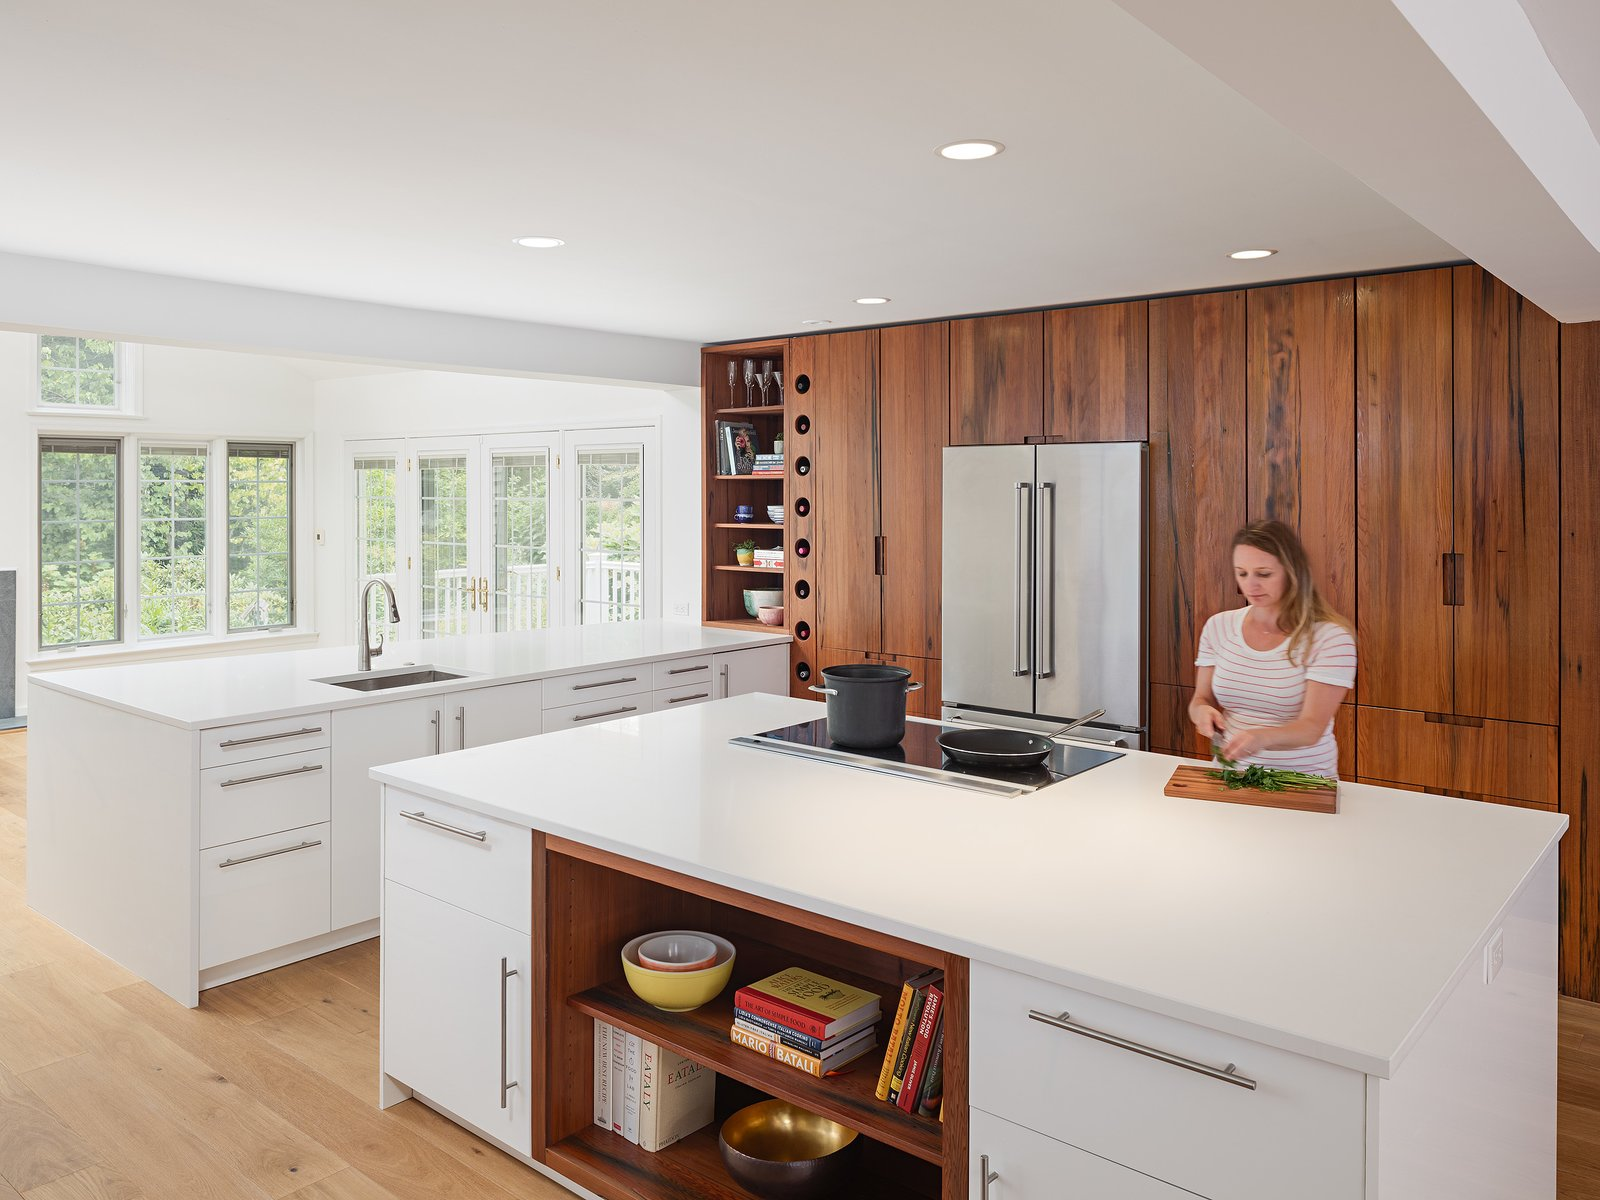 Kitchen, Refrigerator, Engineered Quartz Counter, White Cabinet, Wood Cabinet, Light Hardwood Floor, Recessed Lighting, and Undermount Sink Clean and open kitchen using high gloss white in combination with reclaimed American redwood  Wayne Residence